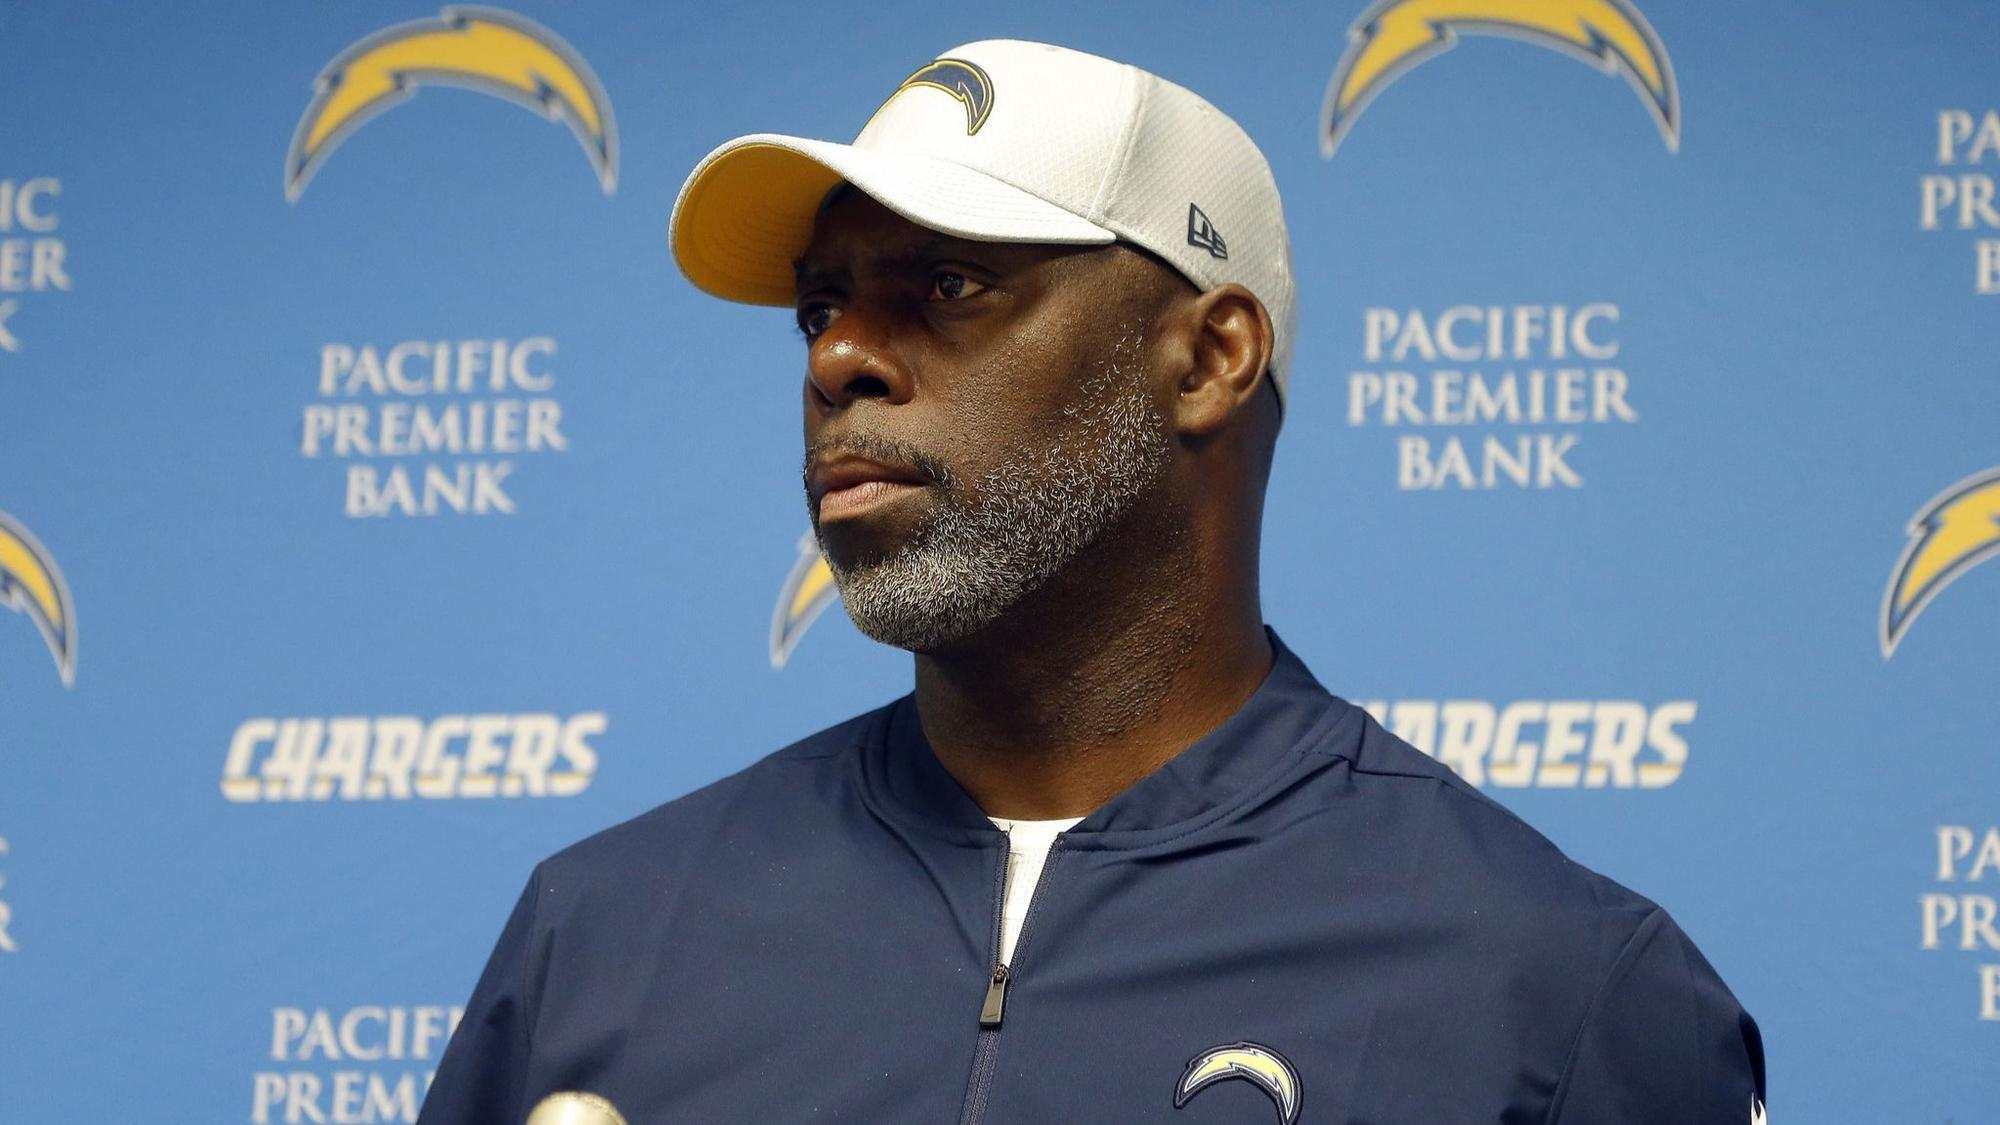 Chargers Lynn Could Be On Hot Seat Soon The San Diego